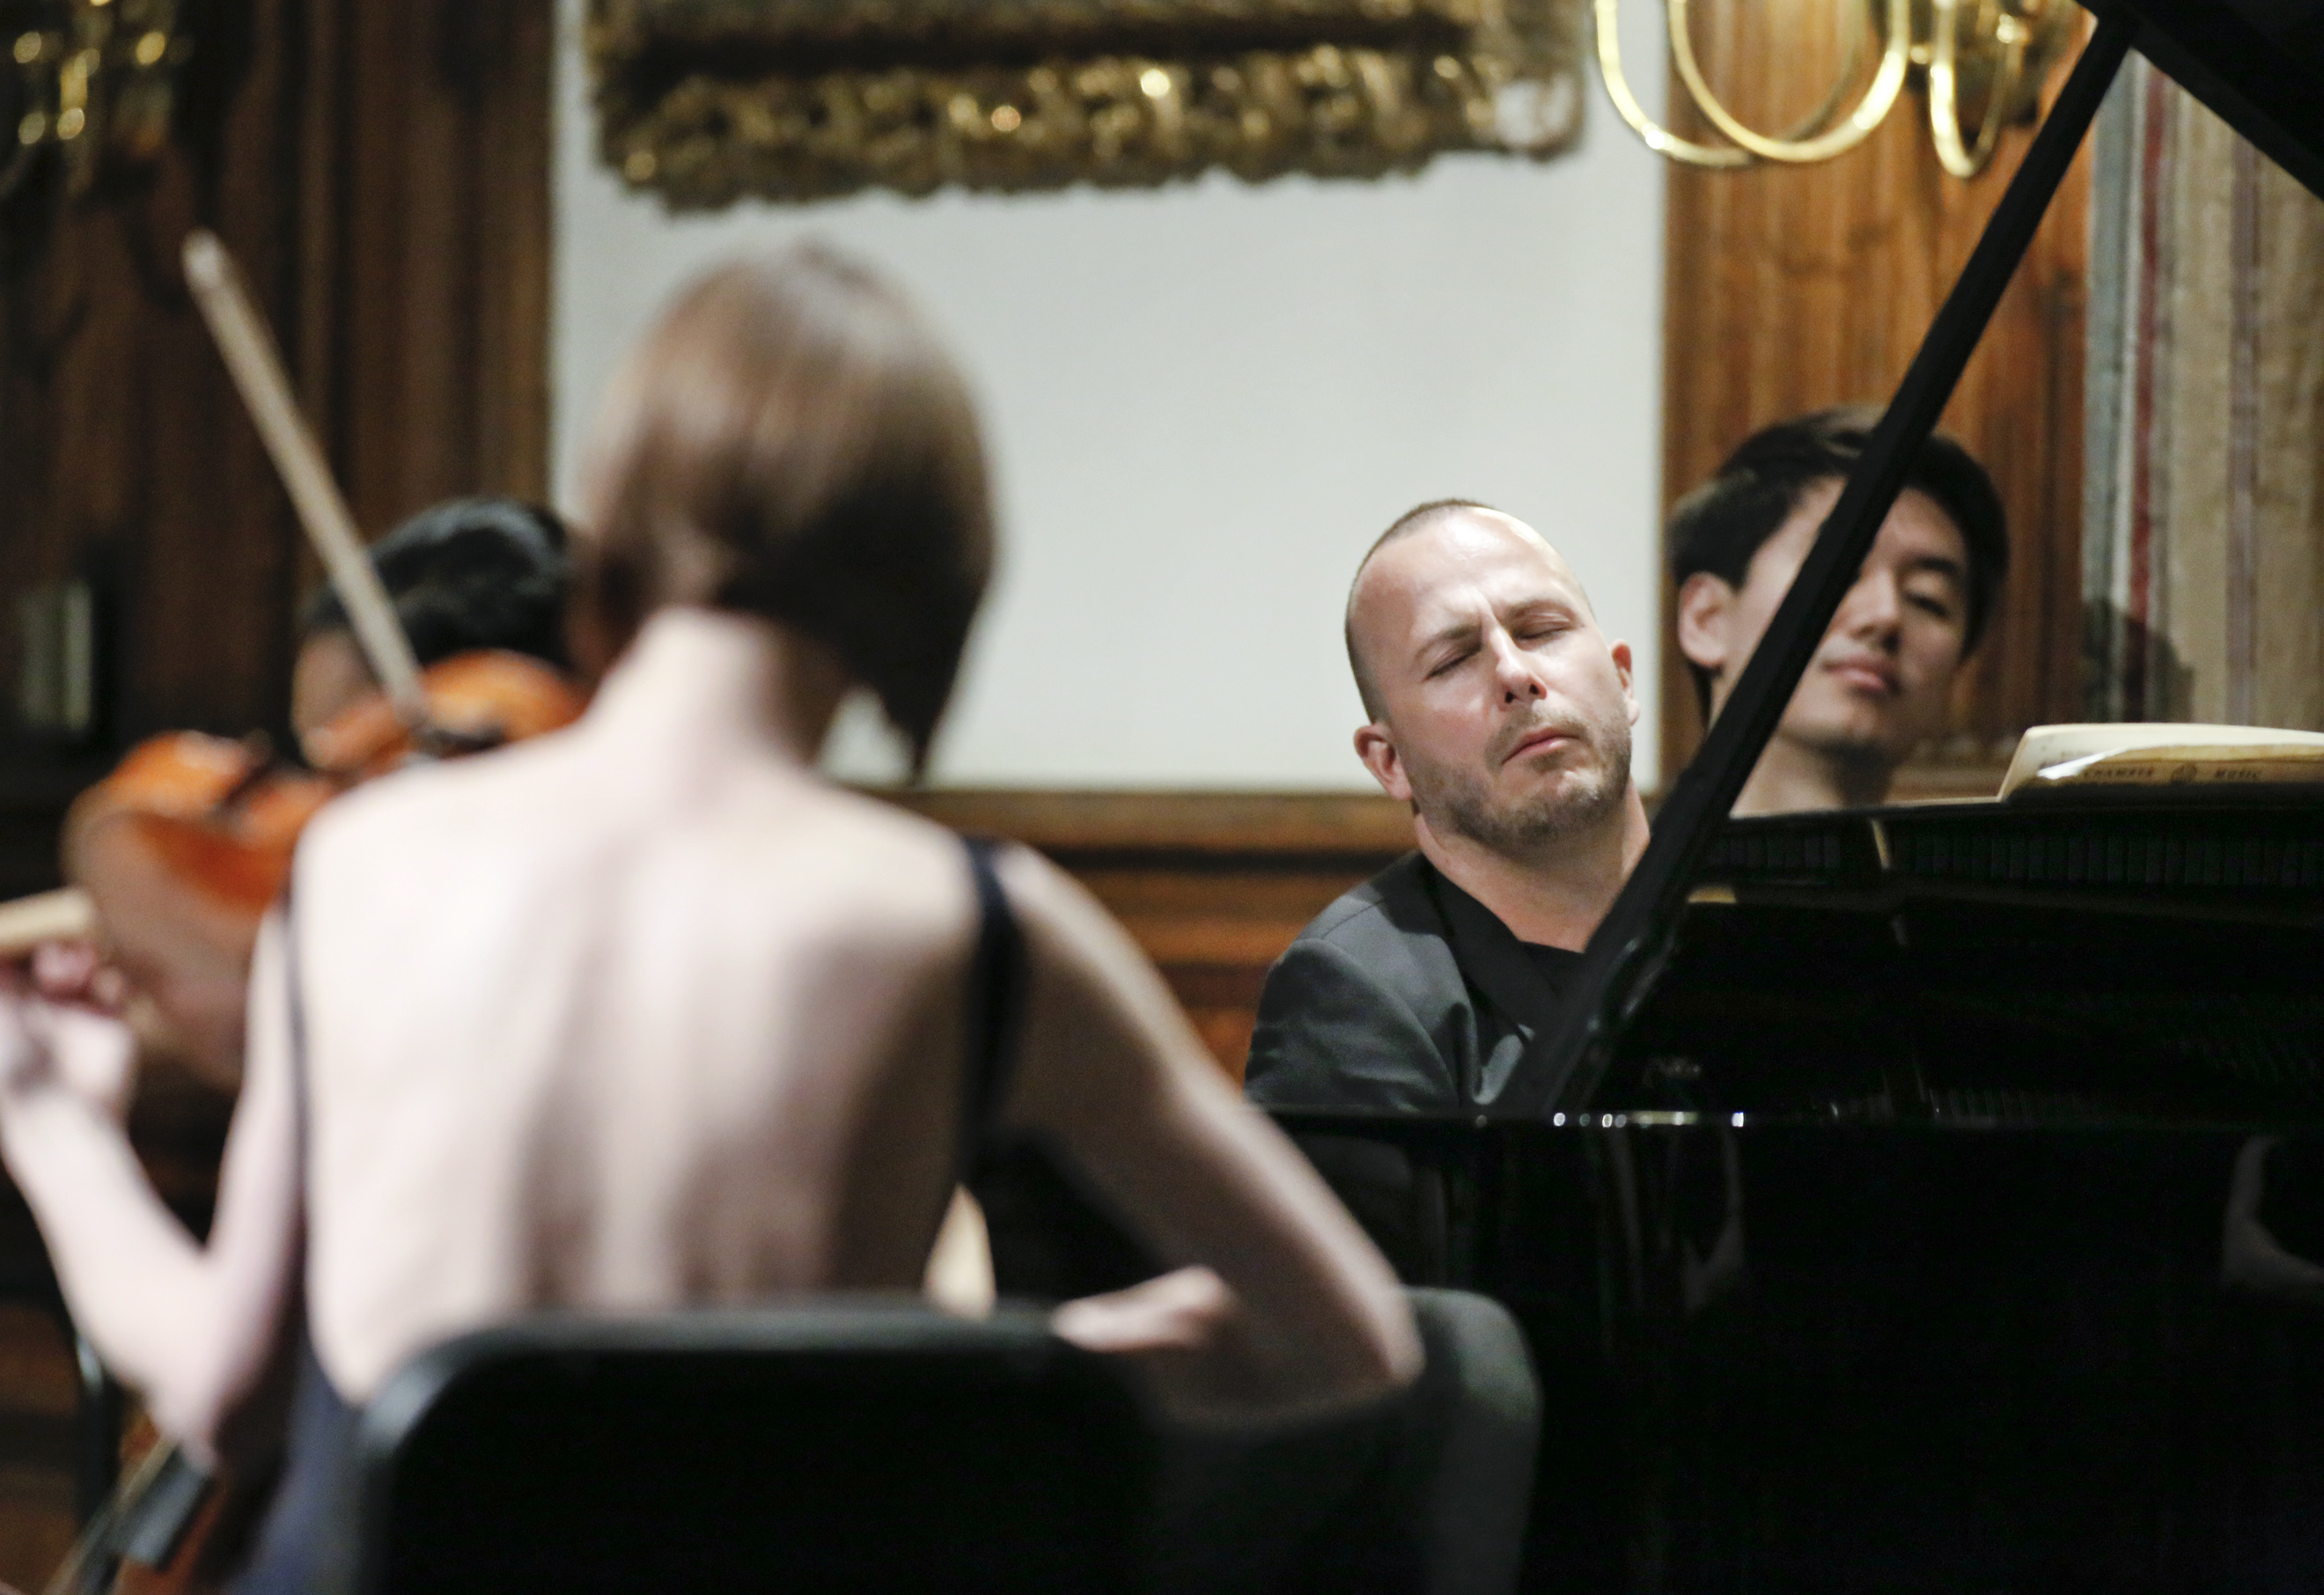 Yannick Nezet-Seguin playing Brahms with musicians from the Philadelphia Orchestra last season.